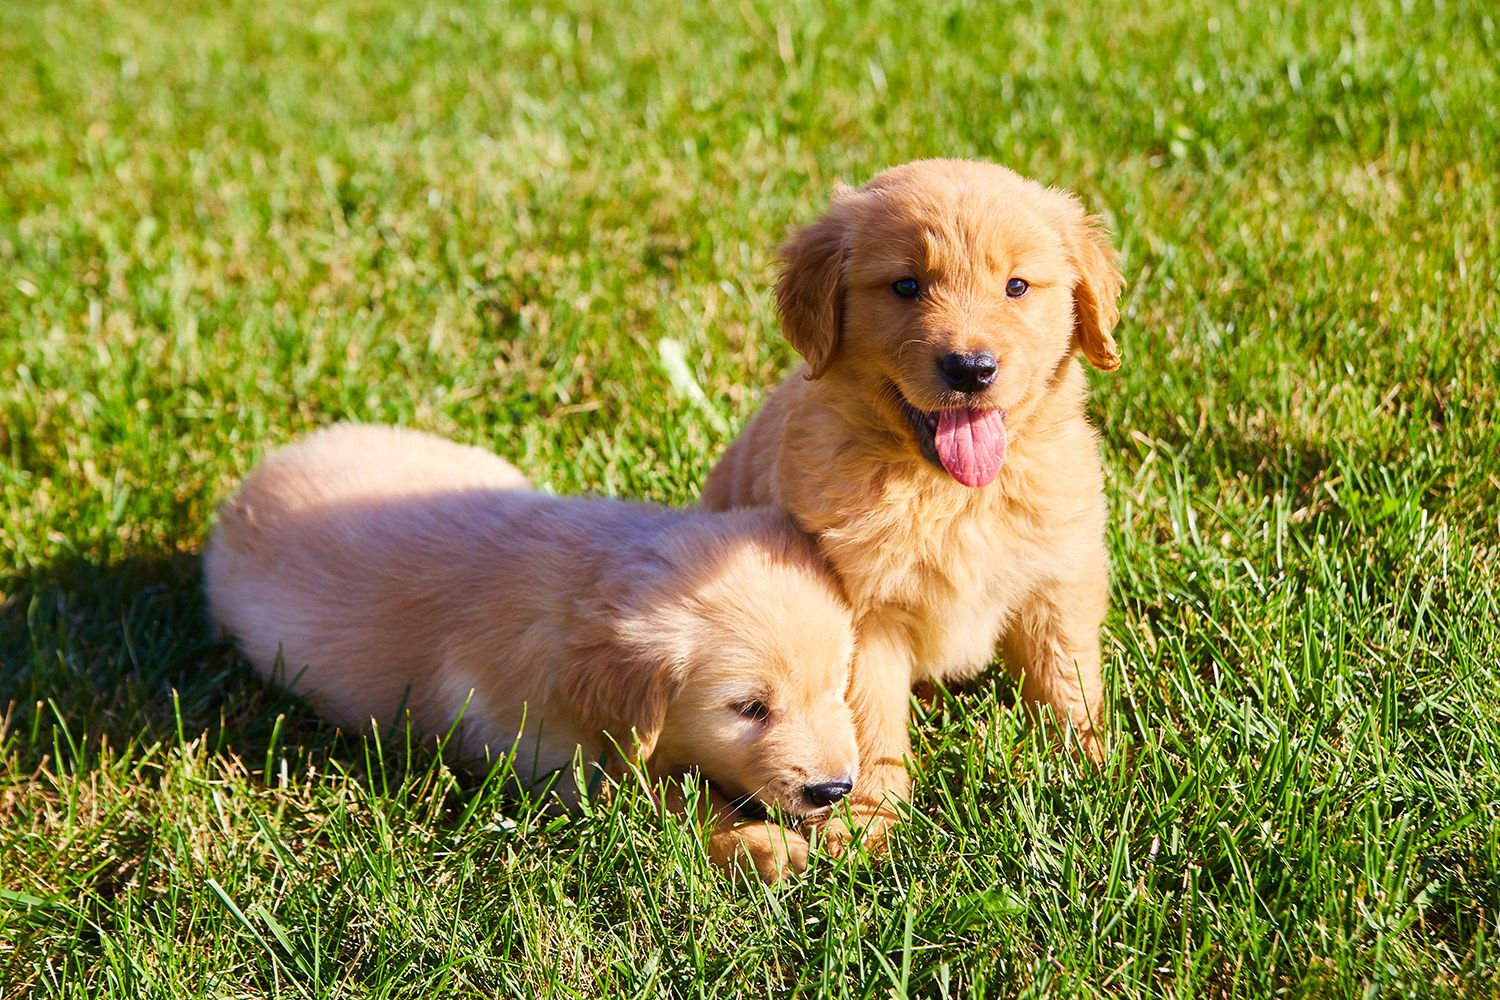 We Don T Have Many Golden Retriever Puppies Left While Their Sisters All Sold These Boys Are Still Up For Adoption They C Golden Retriever Puppies Retriever